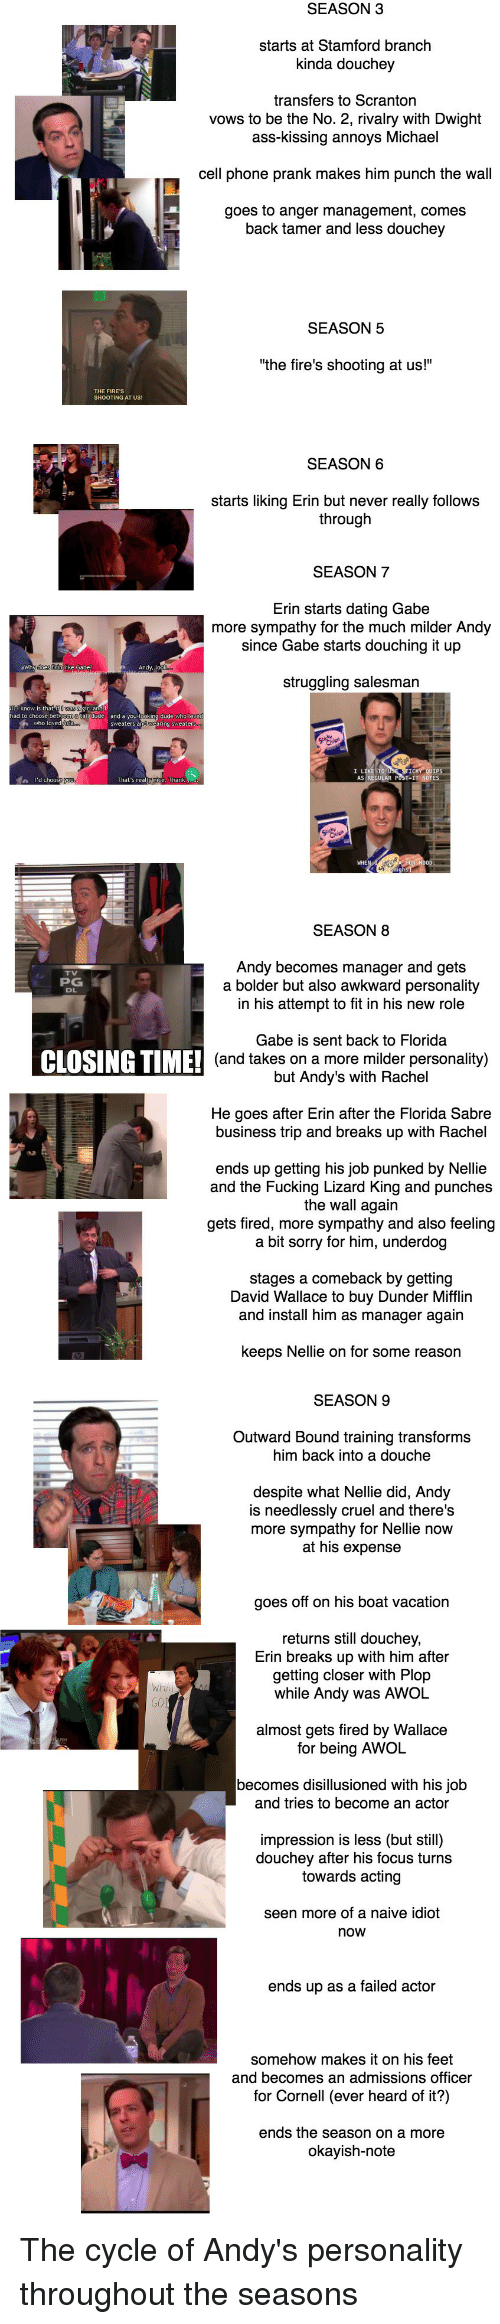 "Ass, Dating, and Fucking: SEASON3  starts at Stamford branch  kinda douchey  transfers to Scranton  vows to be the No. 2, rivalry with Dwight  ass-kissing annoys Michael  cell phone prank makes him punch the wall  goes to anger management, comes  back tamer and less douchey  SEASON 5  the fire's shooting at us!""  SEASON 6  starts liking Erin but never really follows  through  SEASON 7  Erin starts dating Gabe  more sympathy for the much milder Andy  since Gabe starts douching it up  struggling salesman  SEASON 8  Andy becomes manager and gets  a bolder but also awkward personality  in his attempt to fit in his new role  PG  Gabe is sent back to Florida  (and takes on a more milder personality)  but Andy's with Rachel  CLOSING TIME!  He goes after Erin after the Florida Sabre  business trip and breaks up with Rachel  ends up getting his job punked by Nellie  and the Fucking Lizard King and punches  the wall again  gets fired, more sympathy and also feeling  a bit sorry for him, underdog  stages a comeback by getting  David Wallace to buy Dunder Mifflin  and install him as manager again  keeps Nellie on for some reason  SEASON 9  Outward Bound training transforms  him back into a douche  despite what Nellie did, Andy  is needlessly cruel and theres  more sympathy for Nellie now  at his expense  goes off on his boat vacation  returns still douchey  Erin breaks up with him after  getting closer with Plop  while Andy was AWOL  almost gets fired by Wallace  for being AWOL  becomes disillusioned with his job  and tries to become an actor  impression is less (but still)  douchey after his focus turns  towards acting  seen more of a naive idiot  now  ends up as a failed actor  somehow makes it on his feet  and becomes an admissions officer  for Cornell (ever heard of it?)  ends the season on a more  okayish-note The cycle of Andy's personality throughout the seasons"